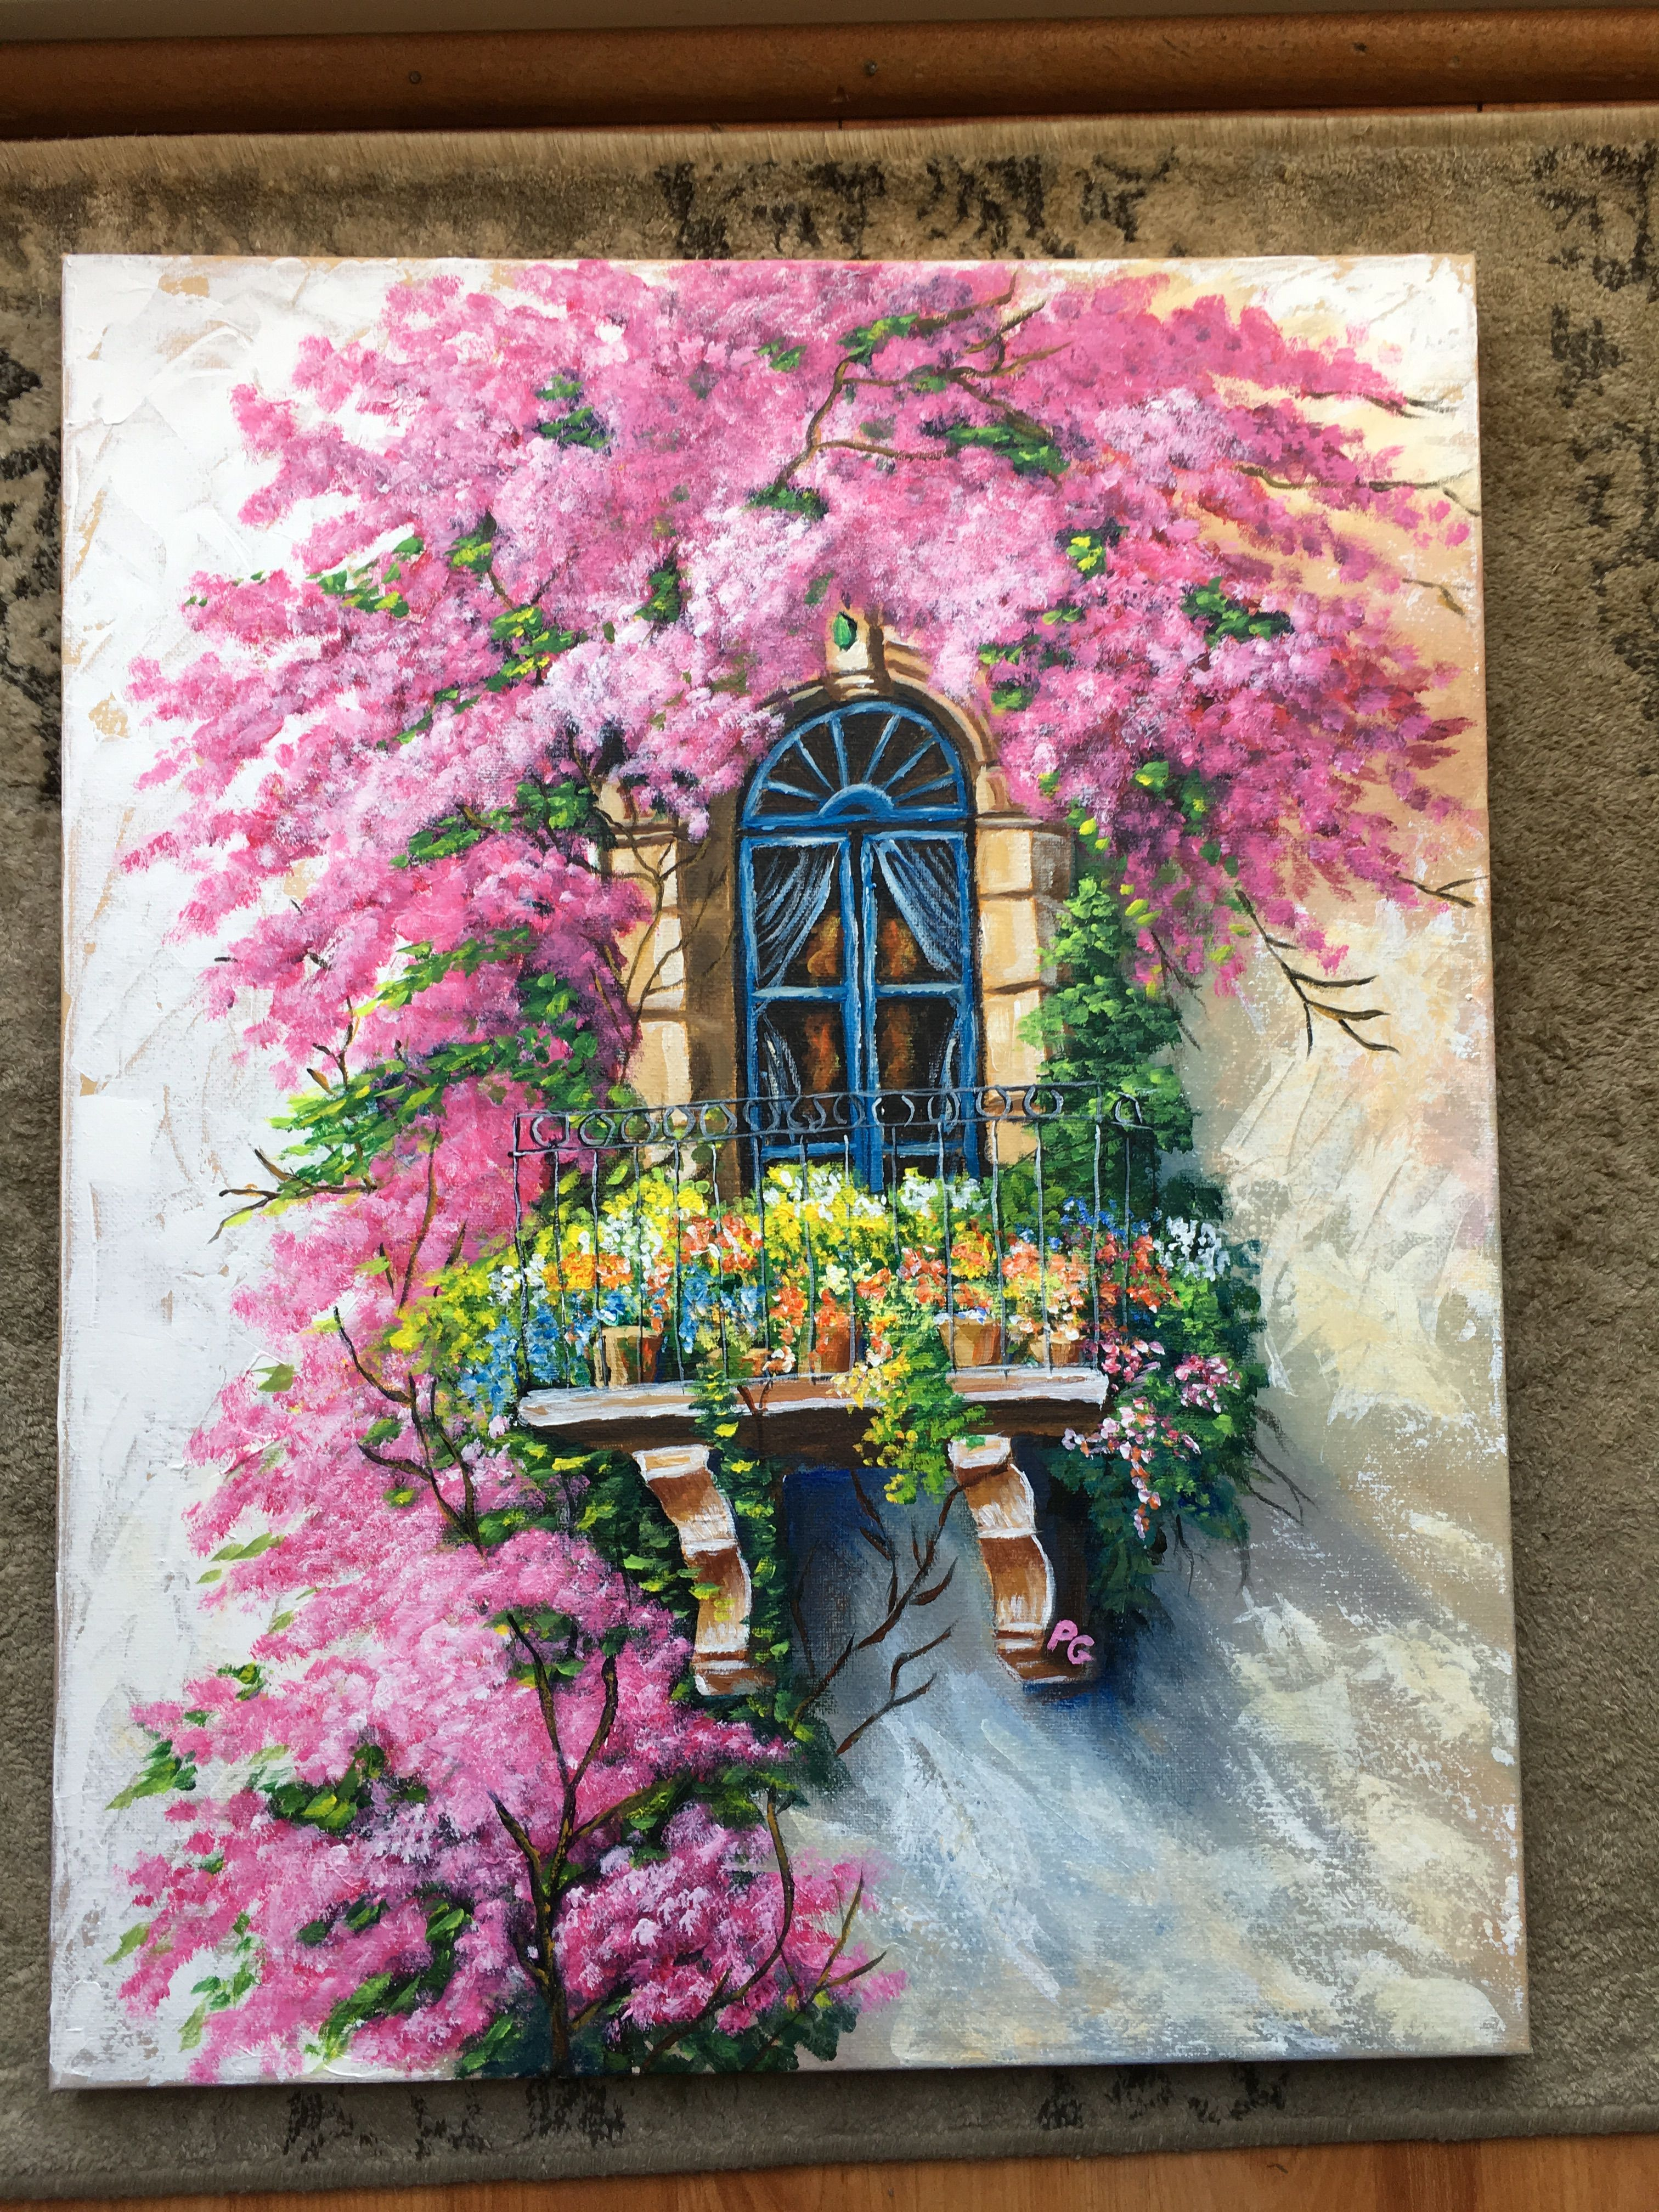 Balcony with bougainvilleas from youtube video by acrylic